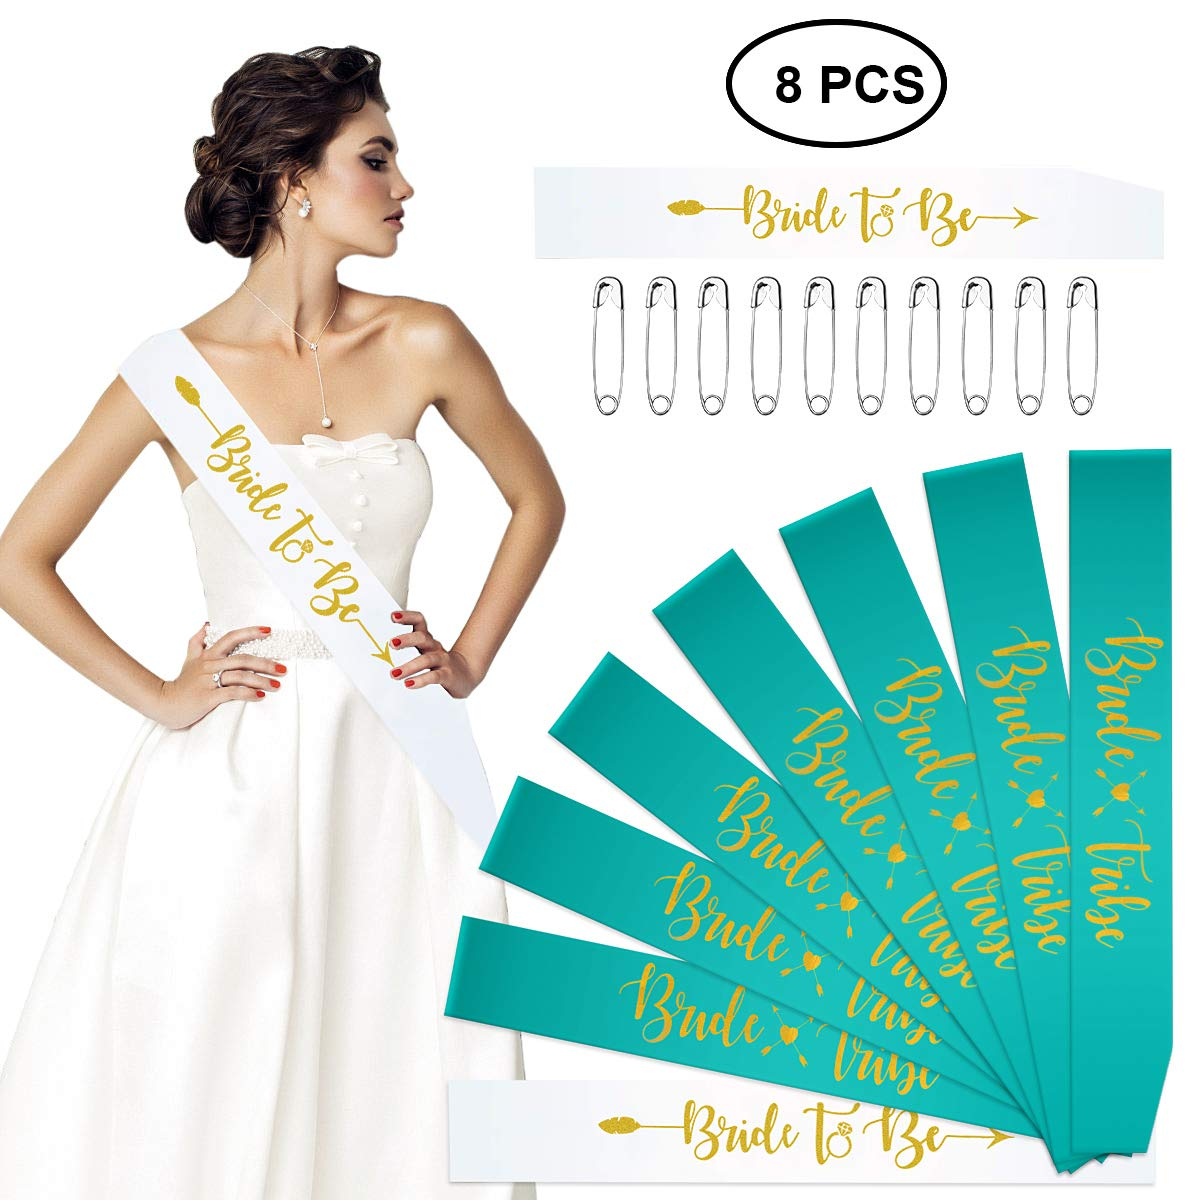 Bride to Be Gift Favours Bridal Shower Accessories Hen Bachelorette Party Sashes Set of 8 Bride Tribe Bridesmaid Sashes Mint Turquoise